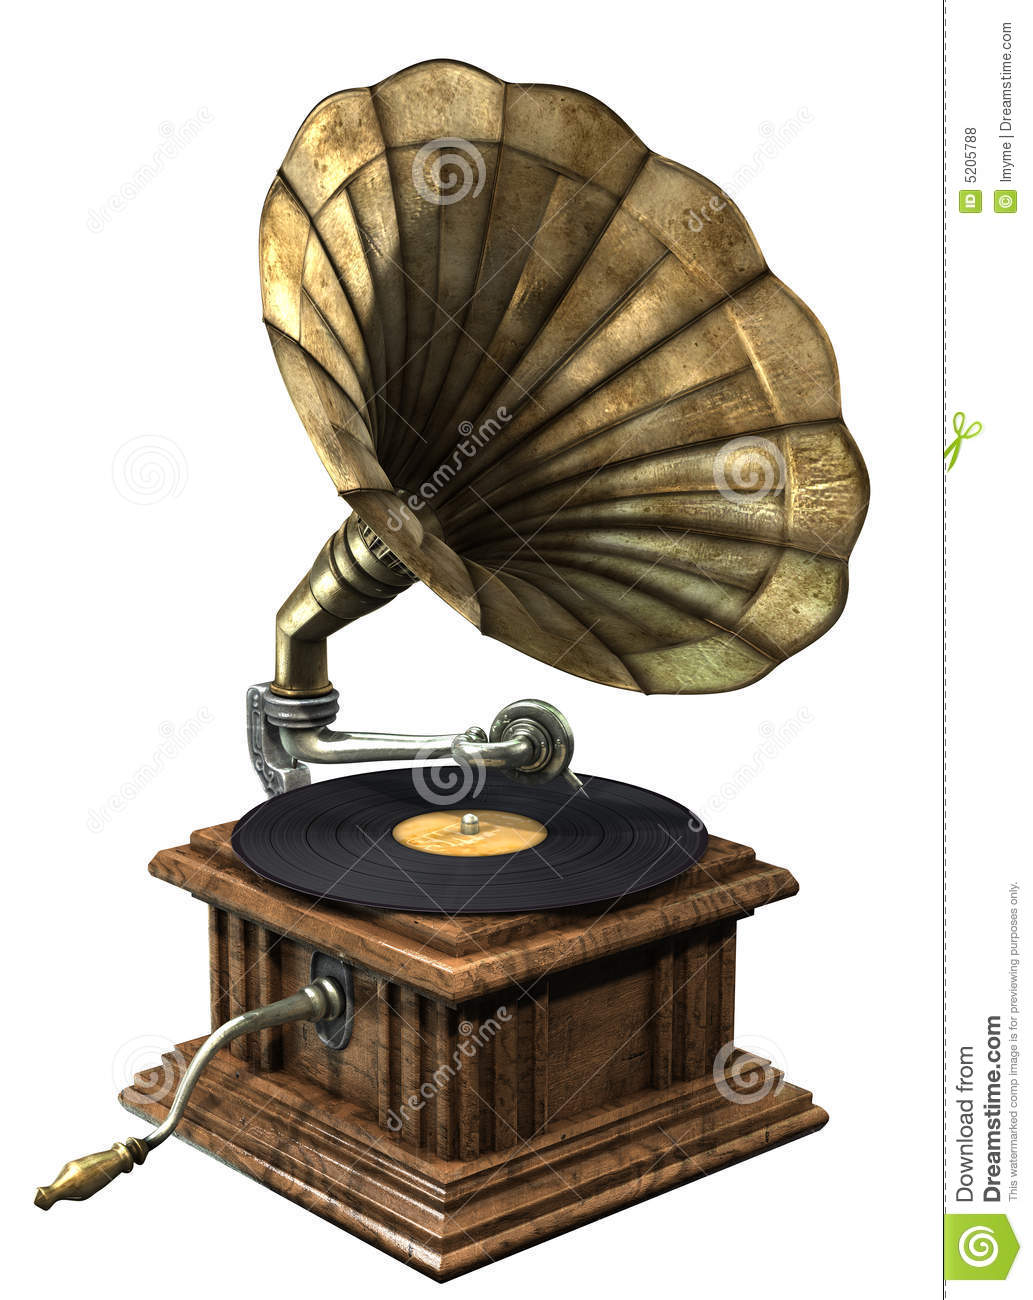 Gramophone Royalty Free Stock Photos - Image: 5205788